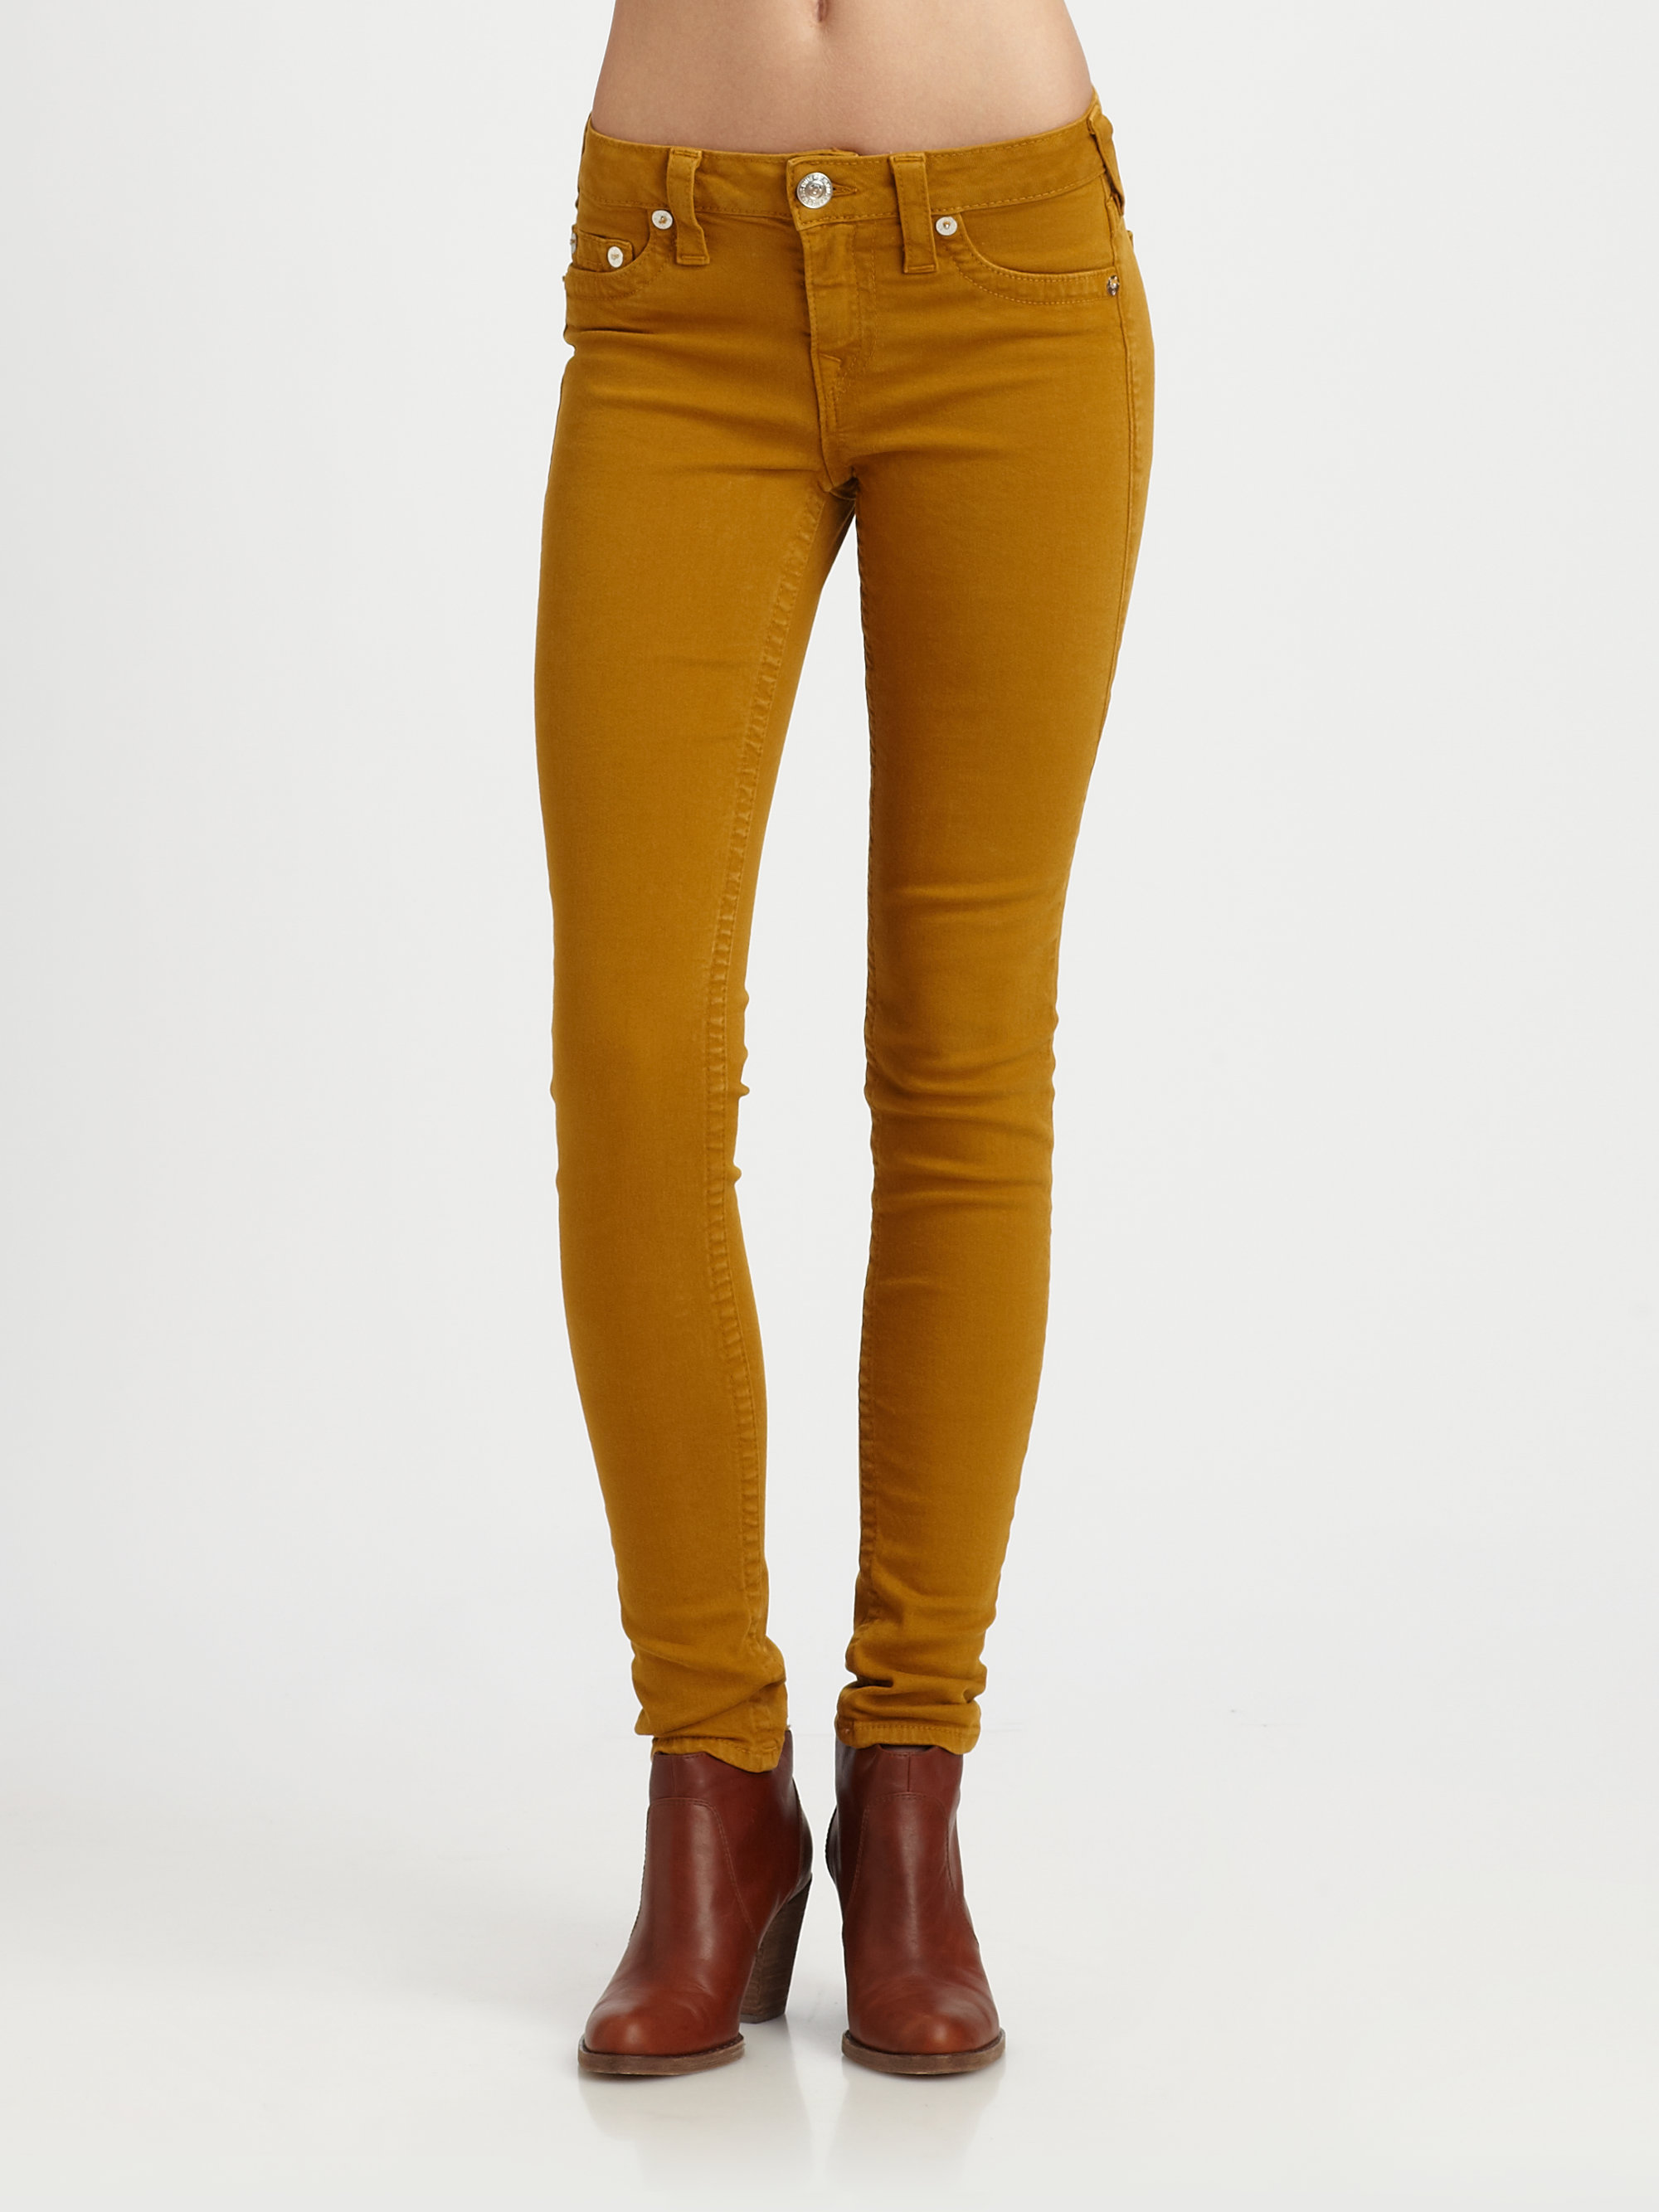 True religion Halle Skinny Jeans in Yellow | Lyst